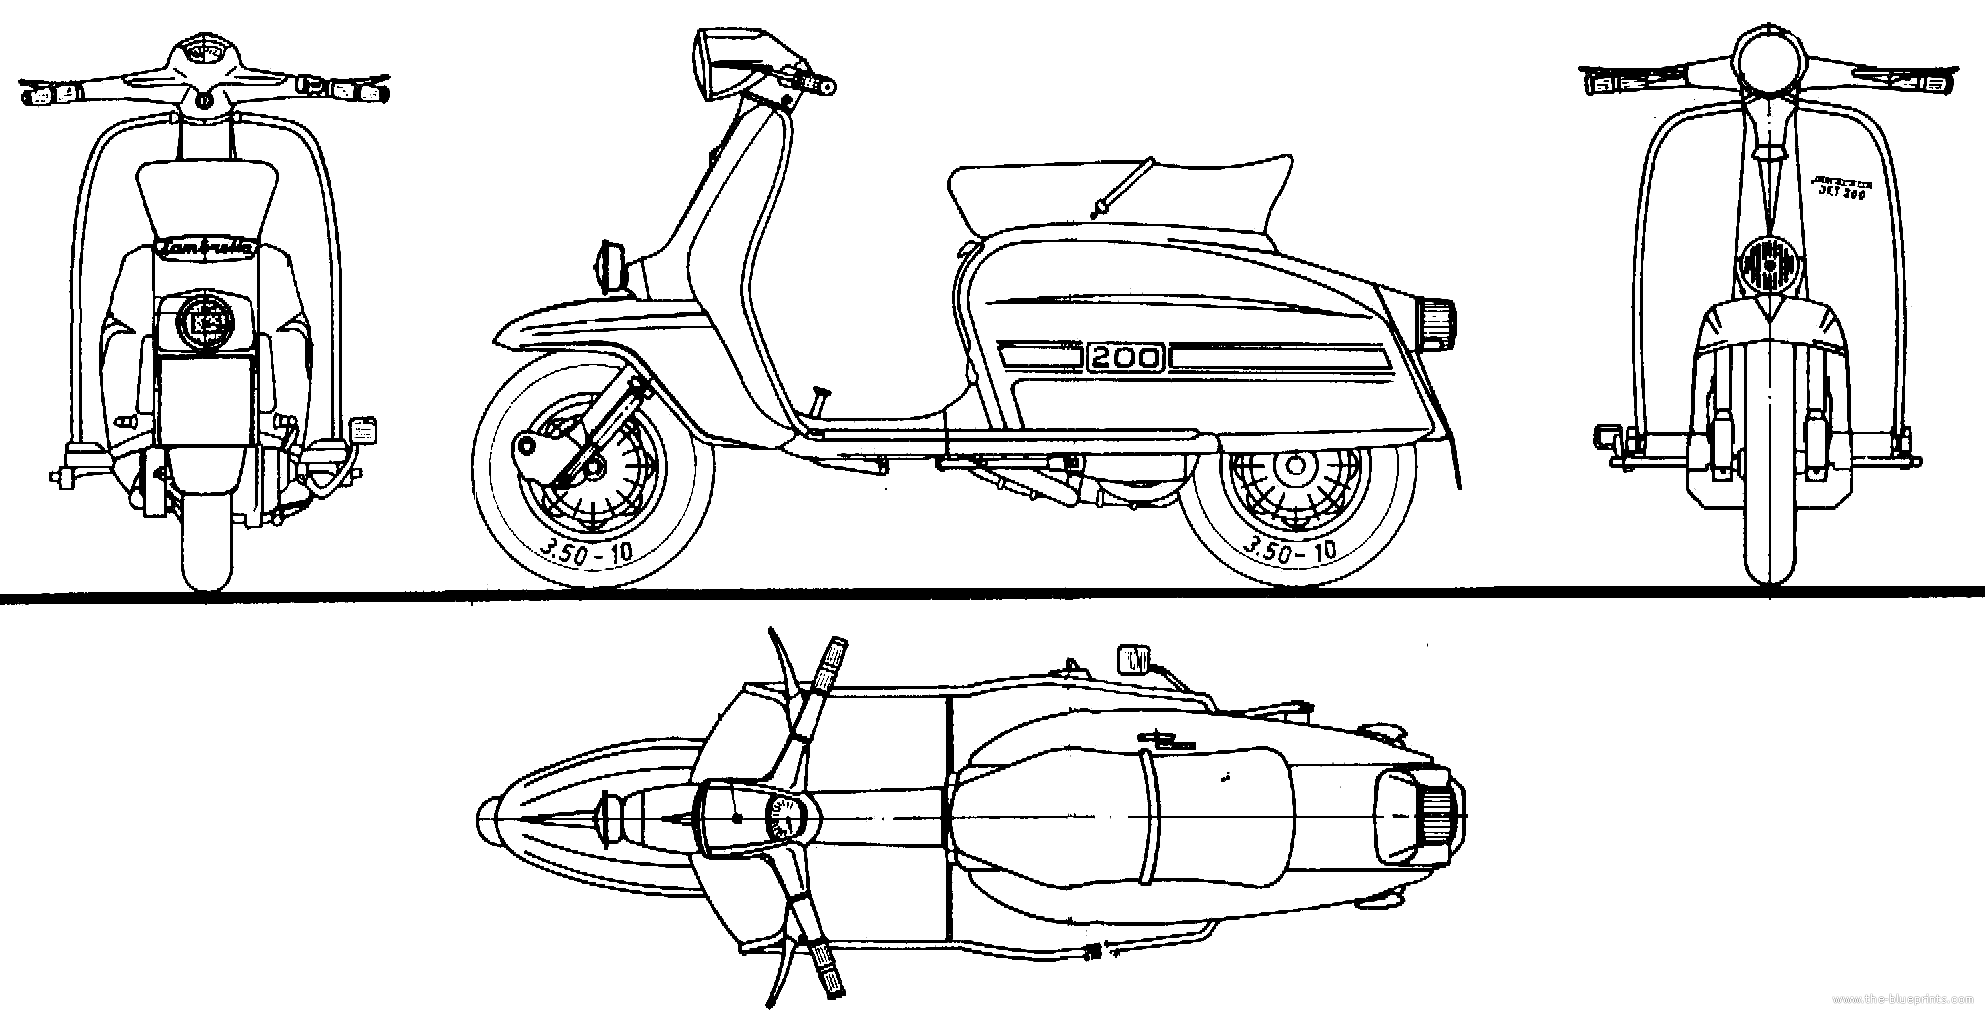 Basic Headlight Wiring Diagram Motorcycle besides Dibujos Para Colorear De Motocicletas as well 115615915404179048 together with Bear On Harley Clipart furthermore Moto Chopper. on harley davidson